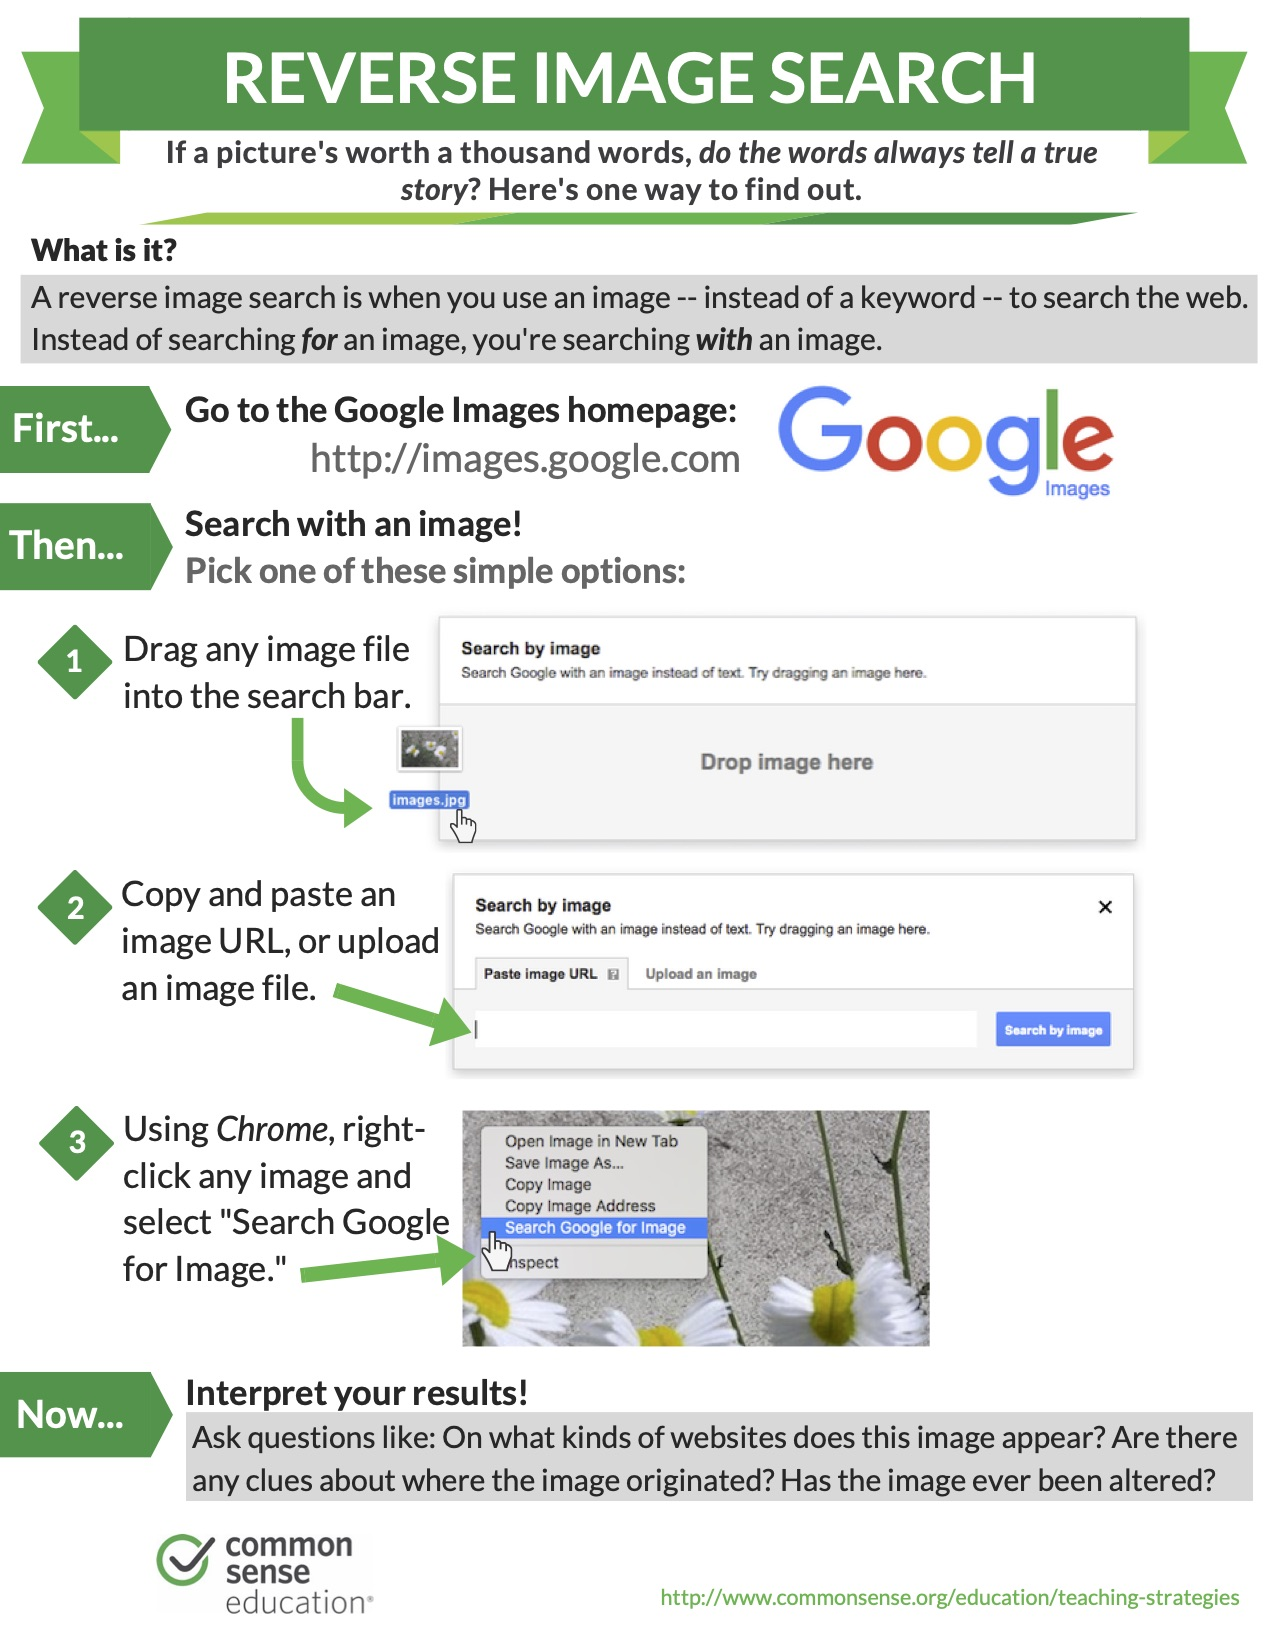 Common Sense Media How to Reverse Image Search